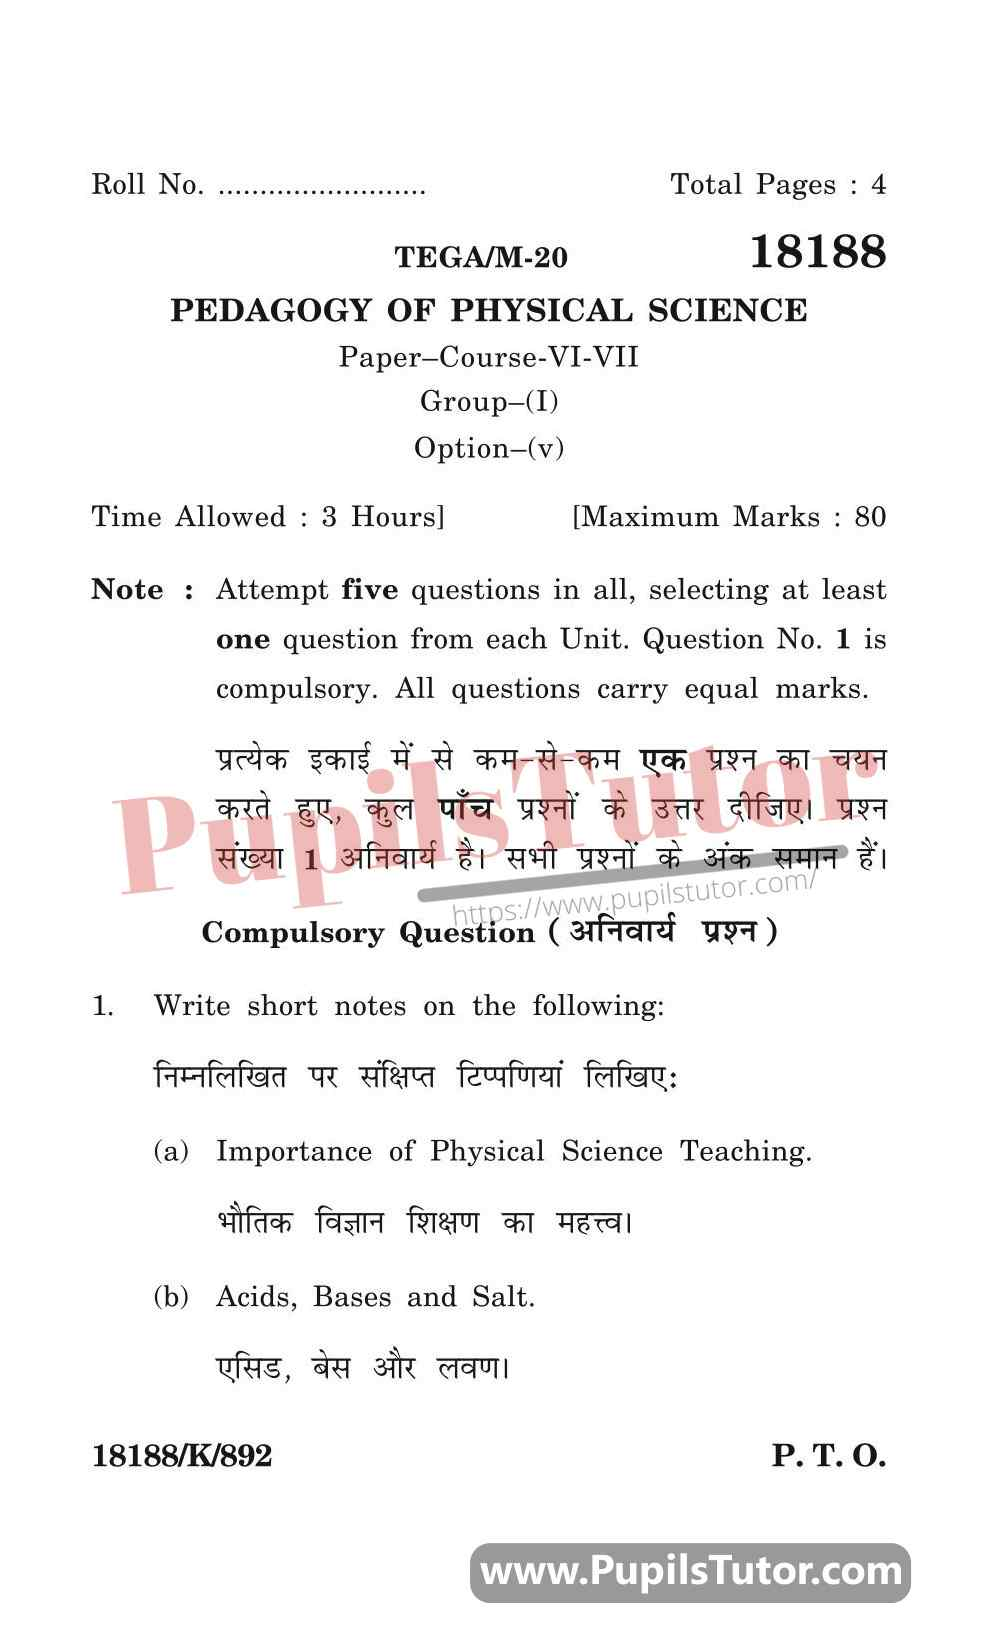 KUK (Kurukshetra University, Haryana) Pedagogy Of Physical Science Question Paper 2020 For B.Ed 1st And 2nd Year And All The 4 Semesters In English And Hindi Medium Free Download PDF - Page 1 - Pupils Tutor